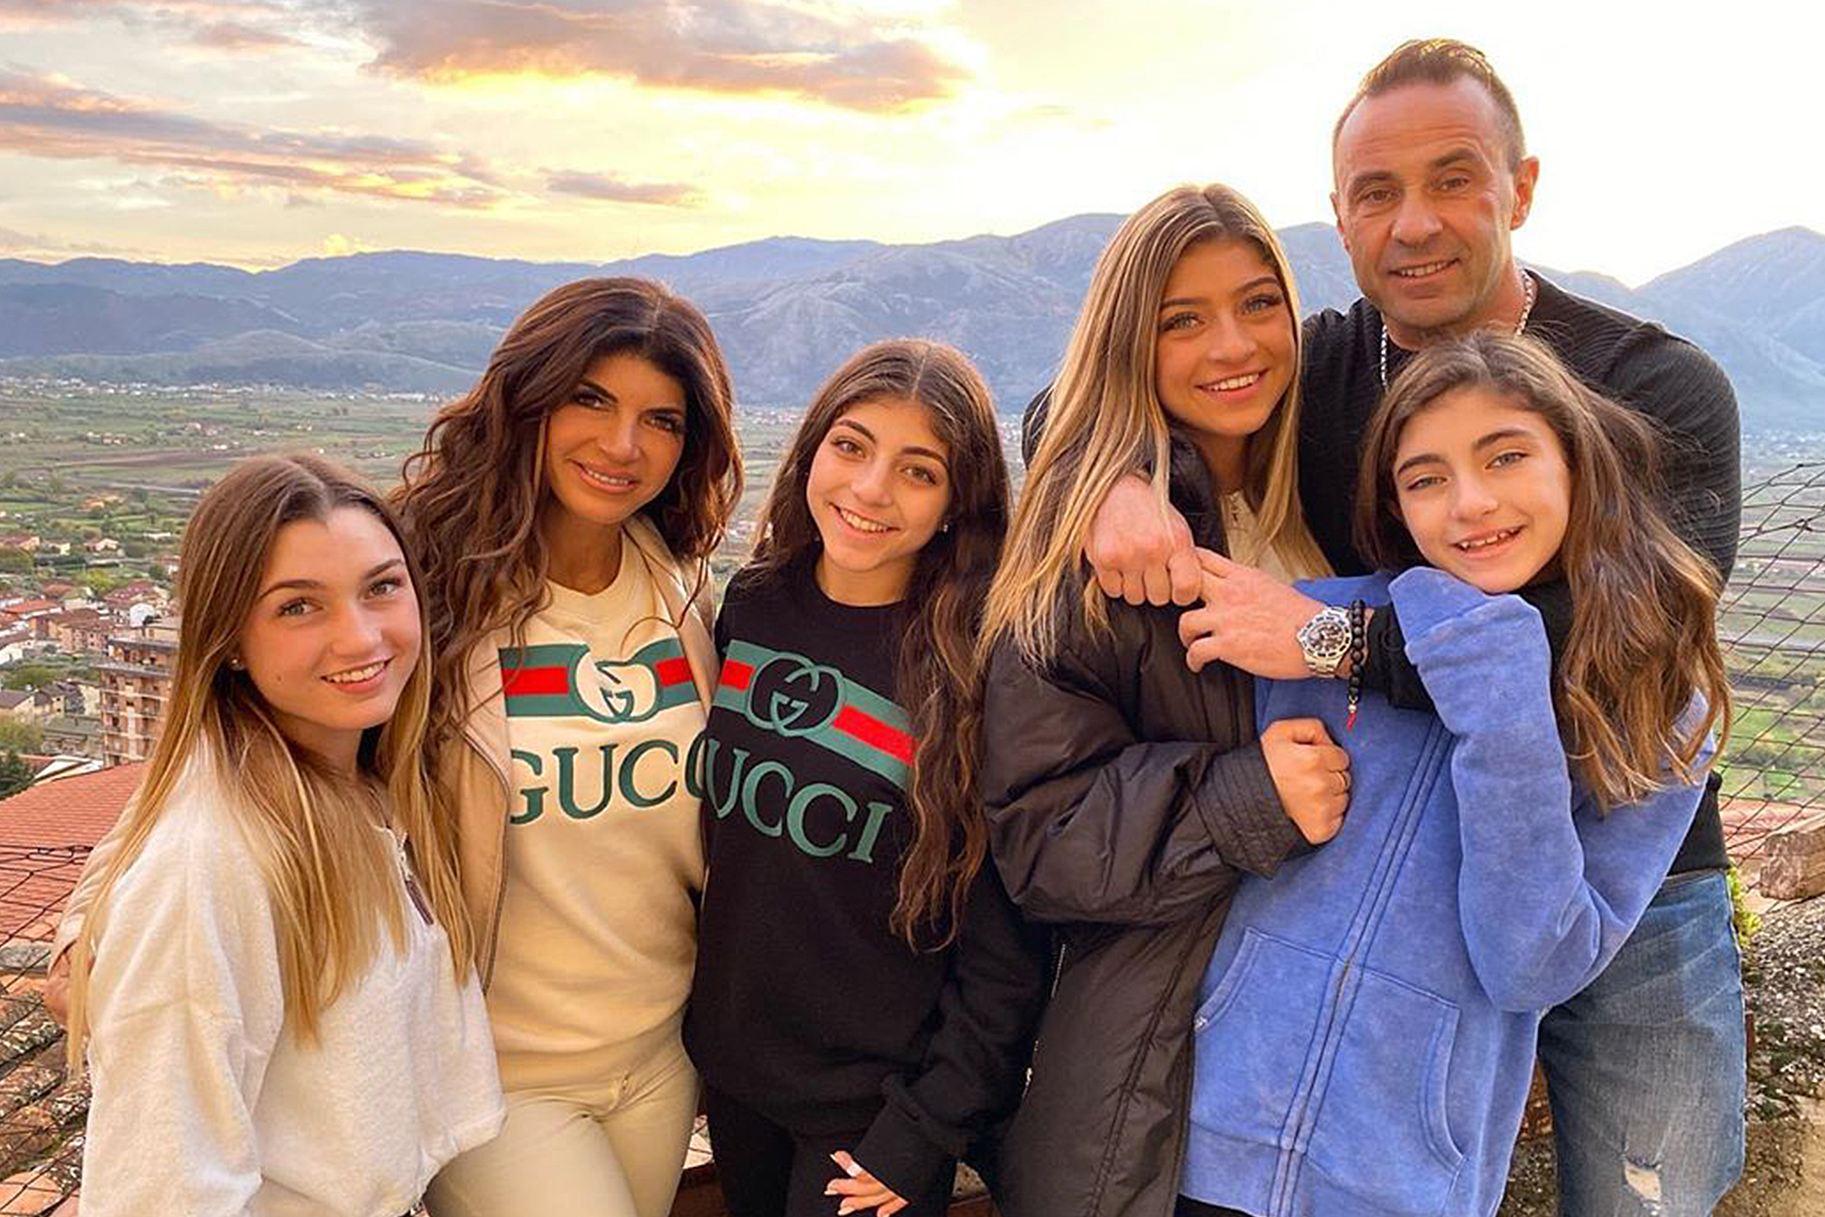 joe-giudice-fires-back-at-troll-calling-him-a-failed-father-and-predicting-his-daughters-will-end-up-on-the-pole